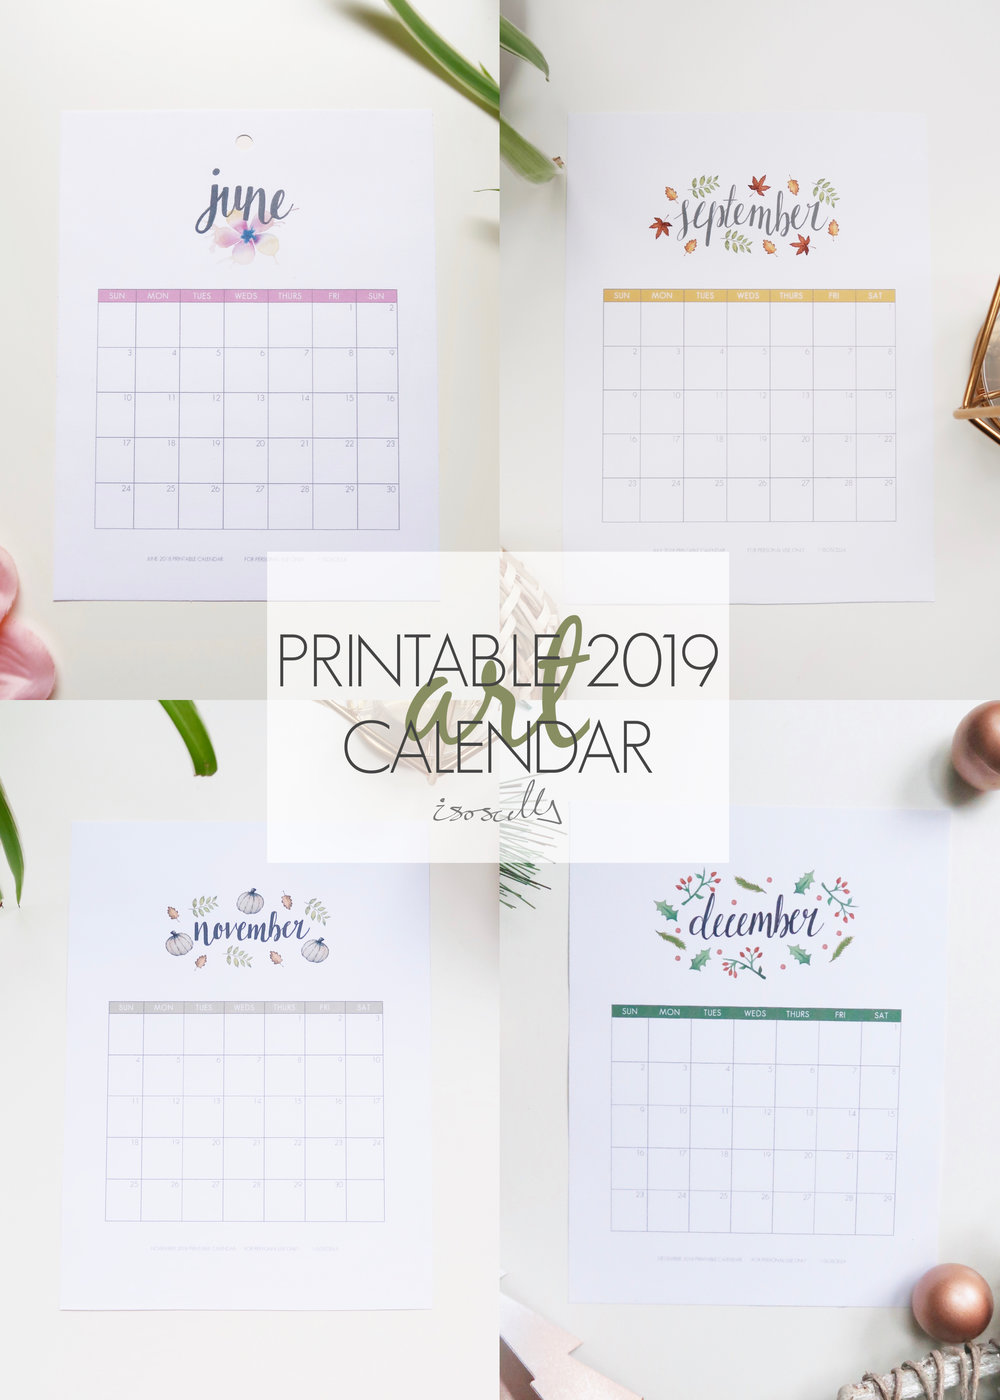 Printable 2019 Calendar by Isoscella